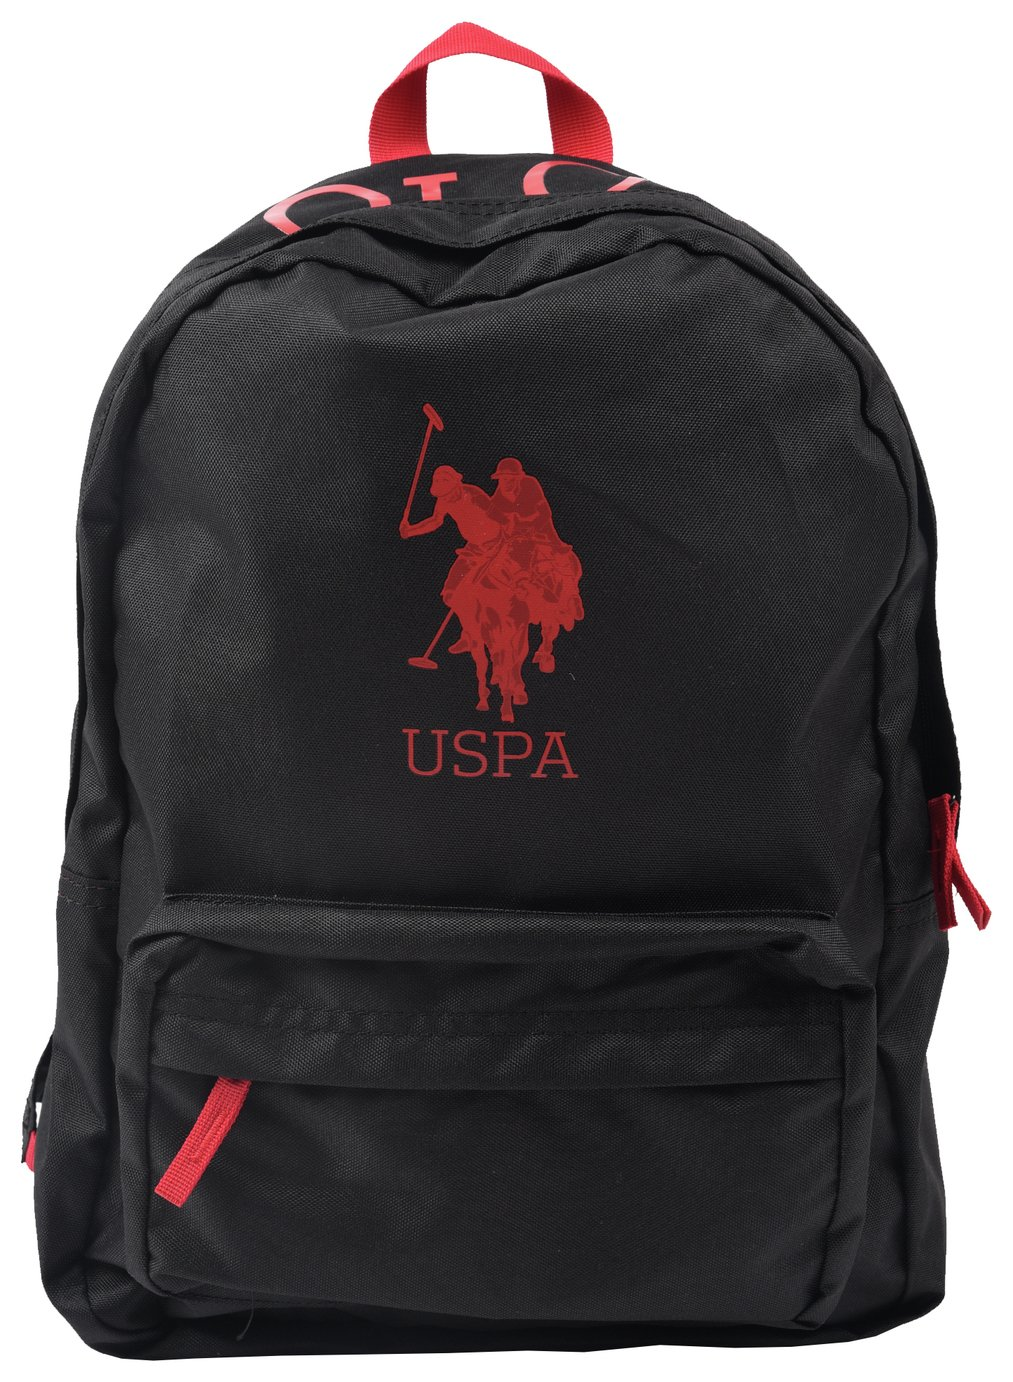 US Polo Assn. 14L Backpack - Black